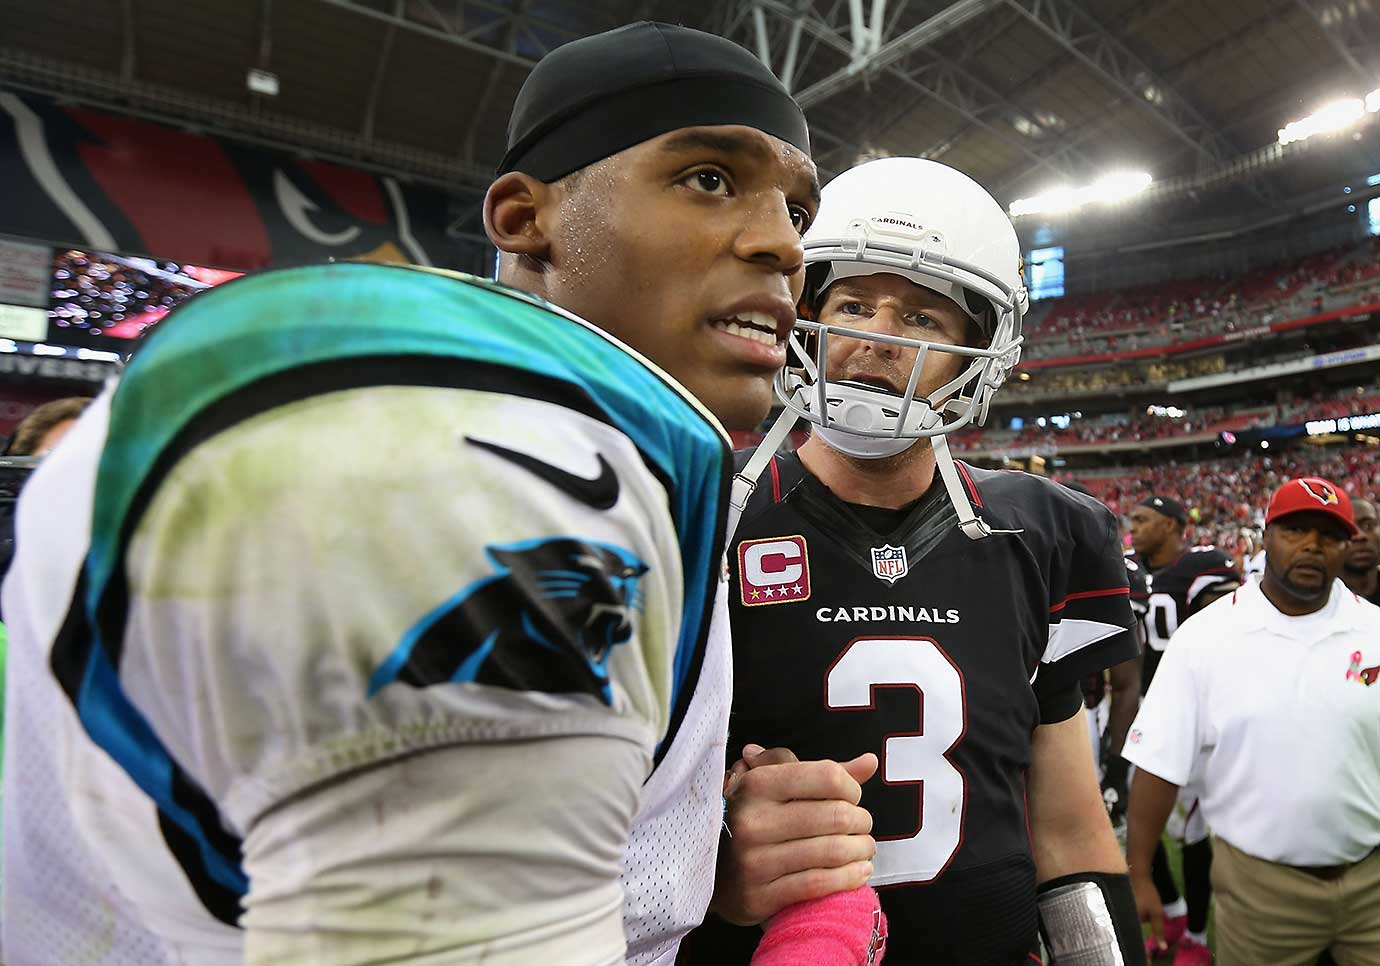 Carson Palmer shakes hands with Cam Newton following their Oct. 6, 2013 game in Glendale, Ariz. Twenty-seven months later they would become the first Heisman-winning quarterbacks to face each other in an NFL playoff game—the 2016 NFC Championship Game.